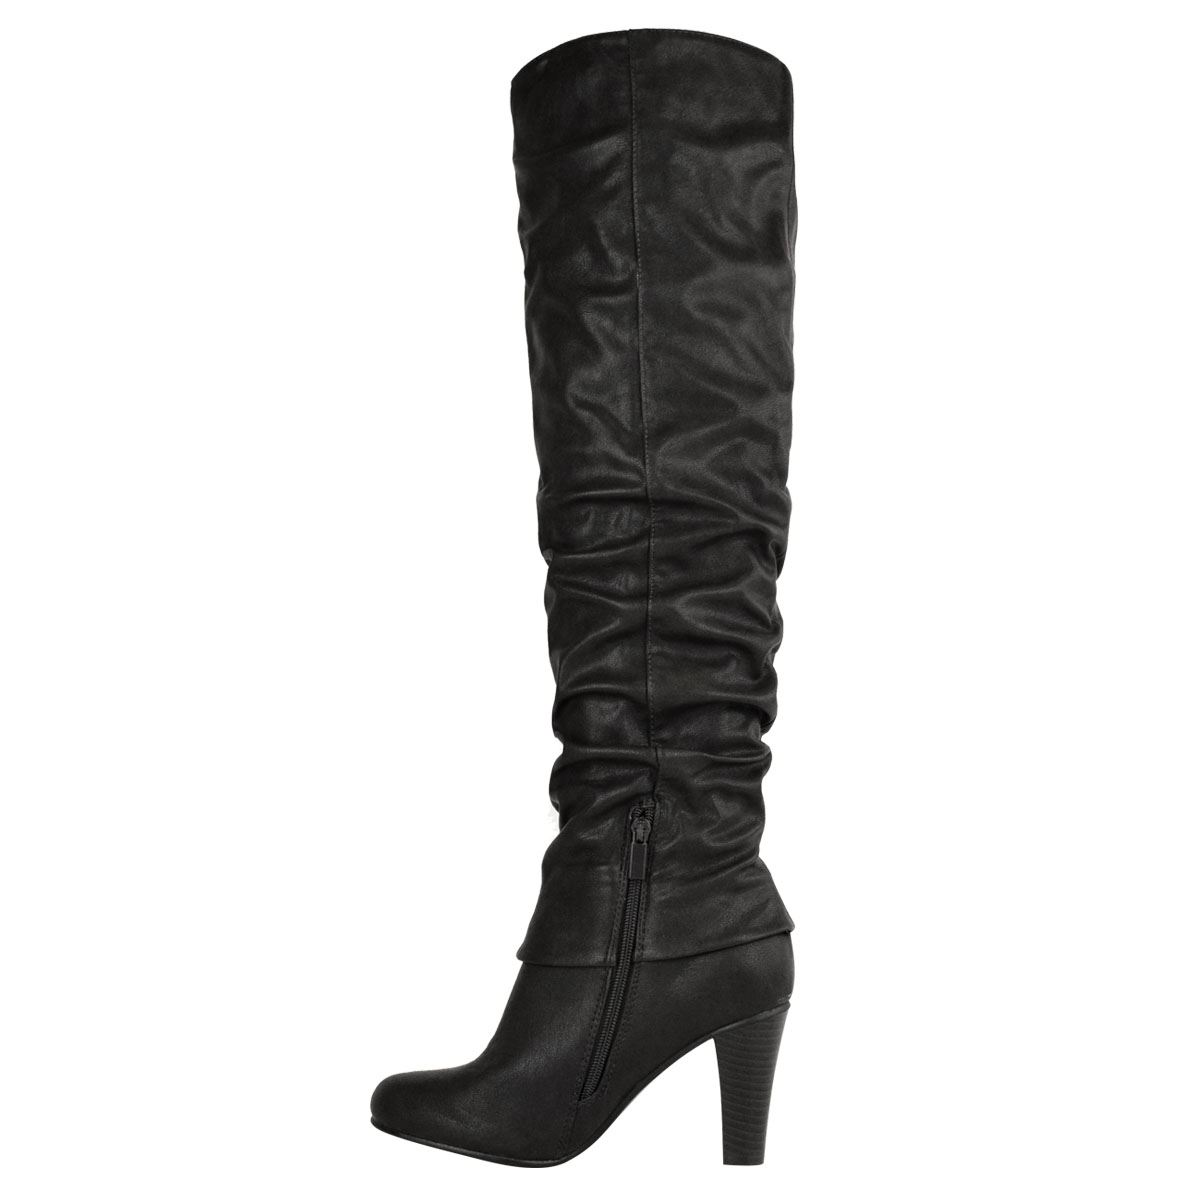 Womens-Ladies-Knee-Calf-High-Boots-Block-Heels-Stretchy-Thigh-Shoes-Grip-Size thumbnail 22